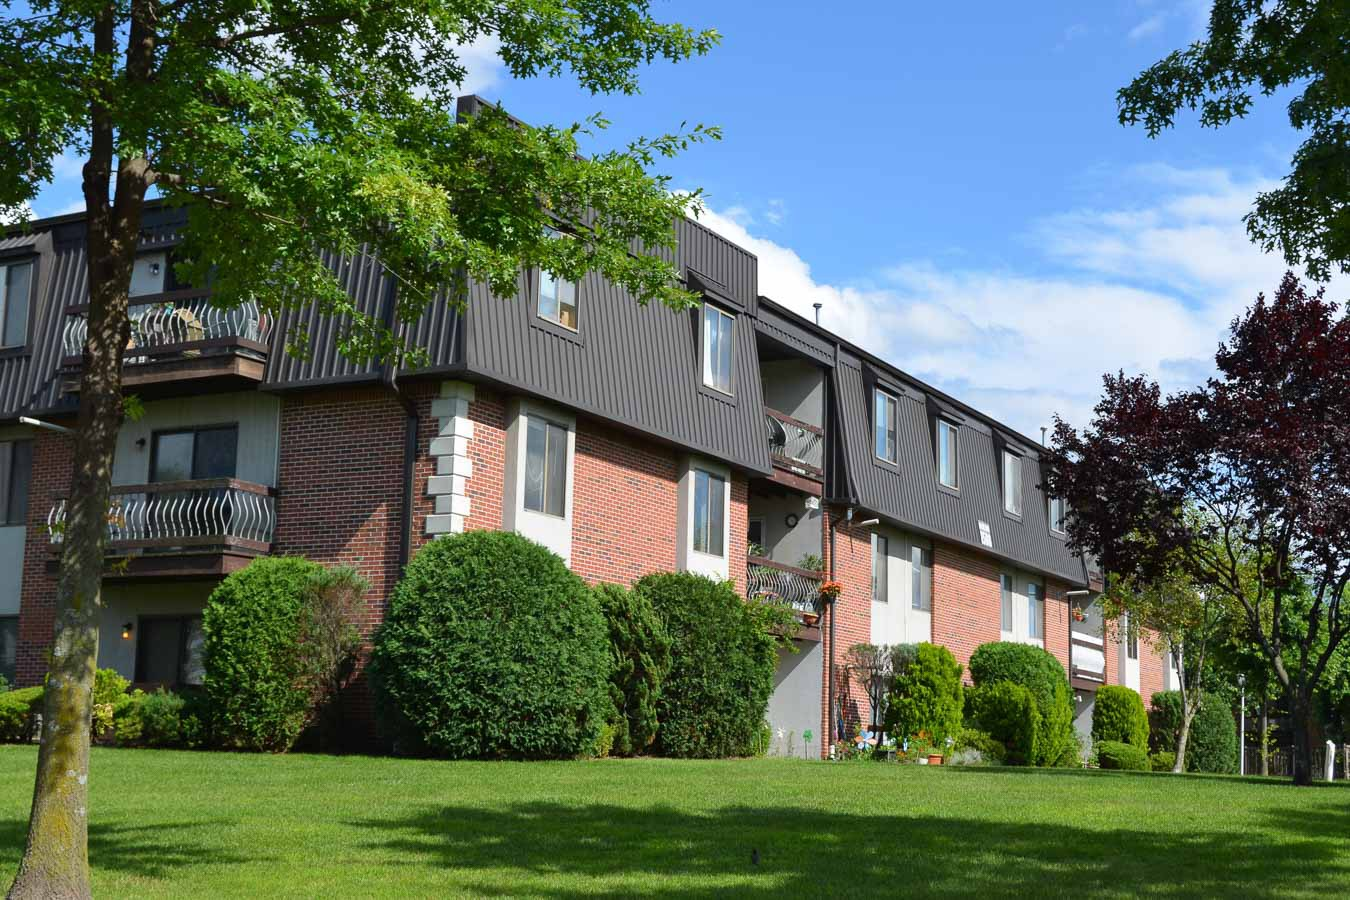 Apartments Near Caldwell Rachel Gardens for Caldwell College Students in Caldwell, NJ